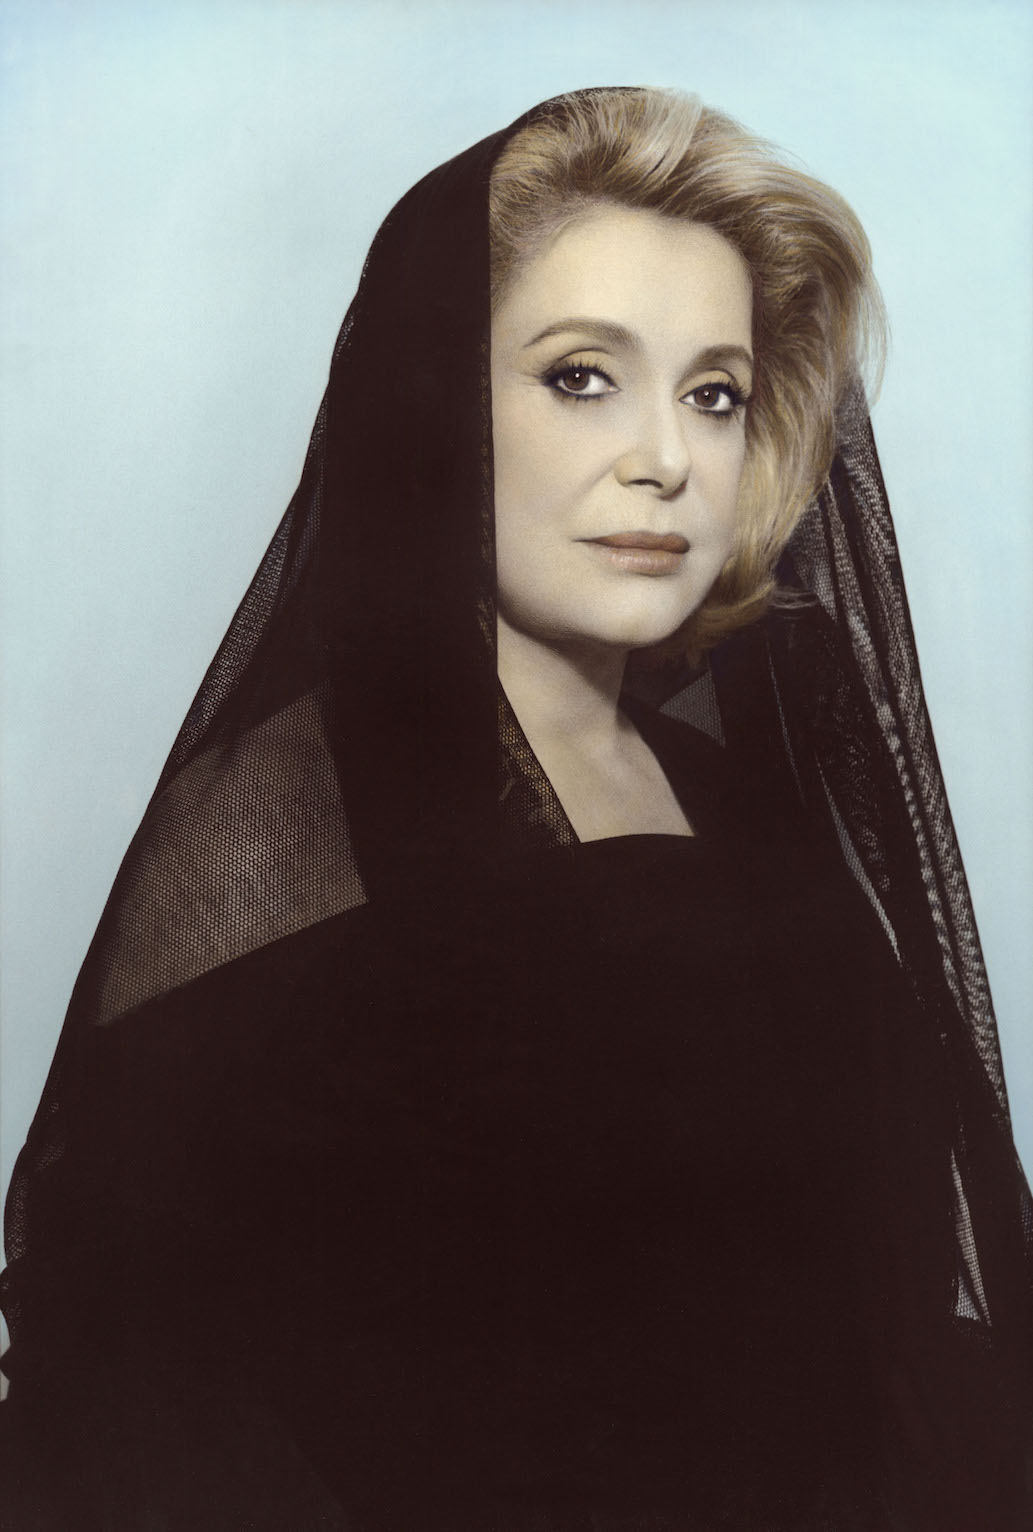 Youssef Nabil - Catherine Deneuve, Paris 2010 Hand colored gelatin silver print Courtesy of the Artist and Nathalie Obadia Gallery, Paris/ Brussels